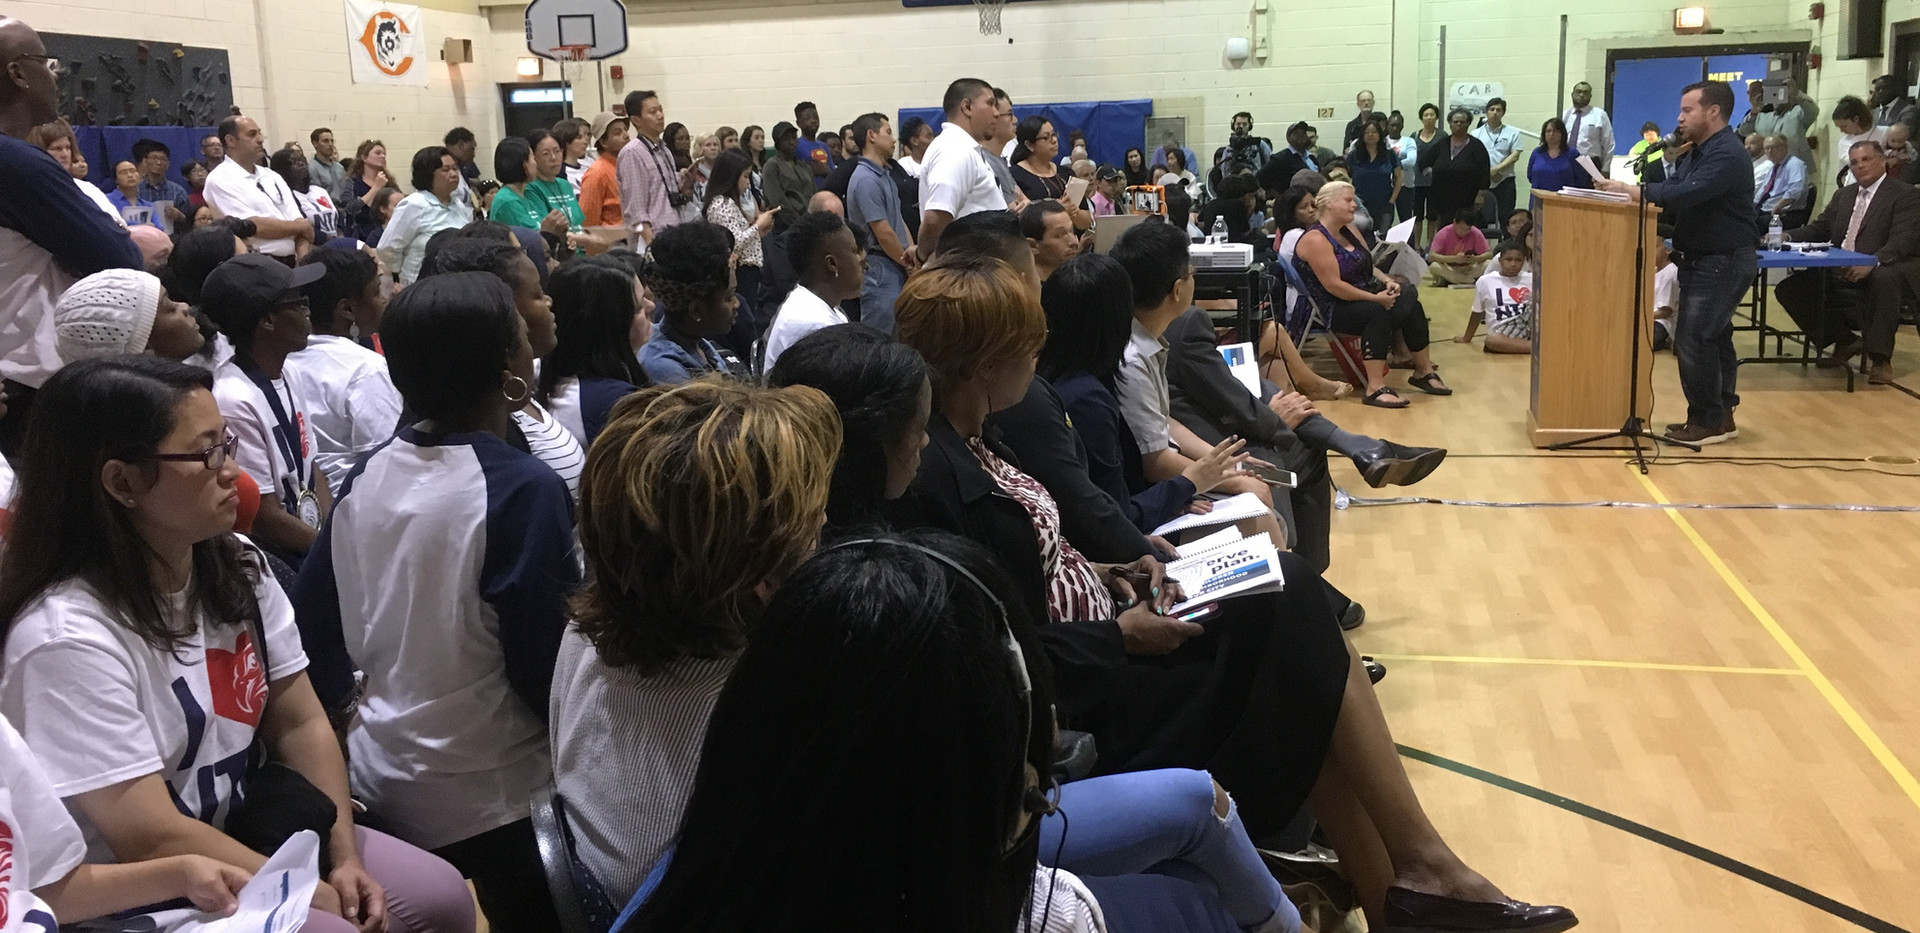 Immediately, Chicago Public Schools began holding community town halls to share proposal details. Here, you can see a long line of speakers waiting for a 2-minute speaking slot to speak for or against the given proposal, in a typical town hall format that severely limits the ability to collaborate or consider other options.